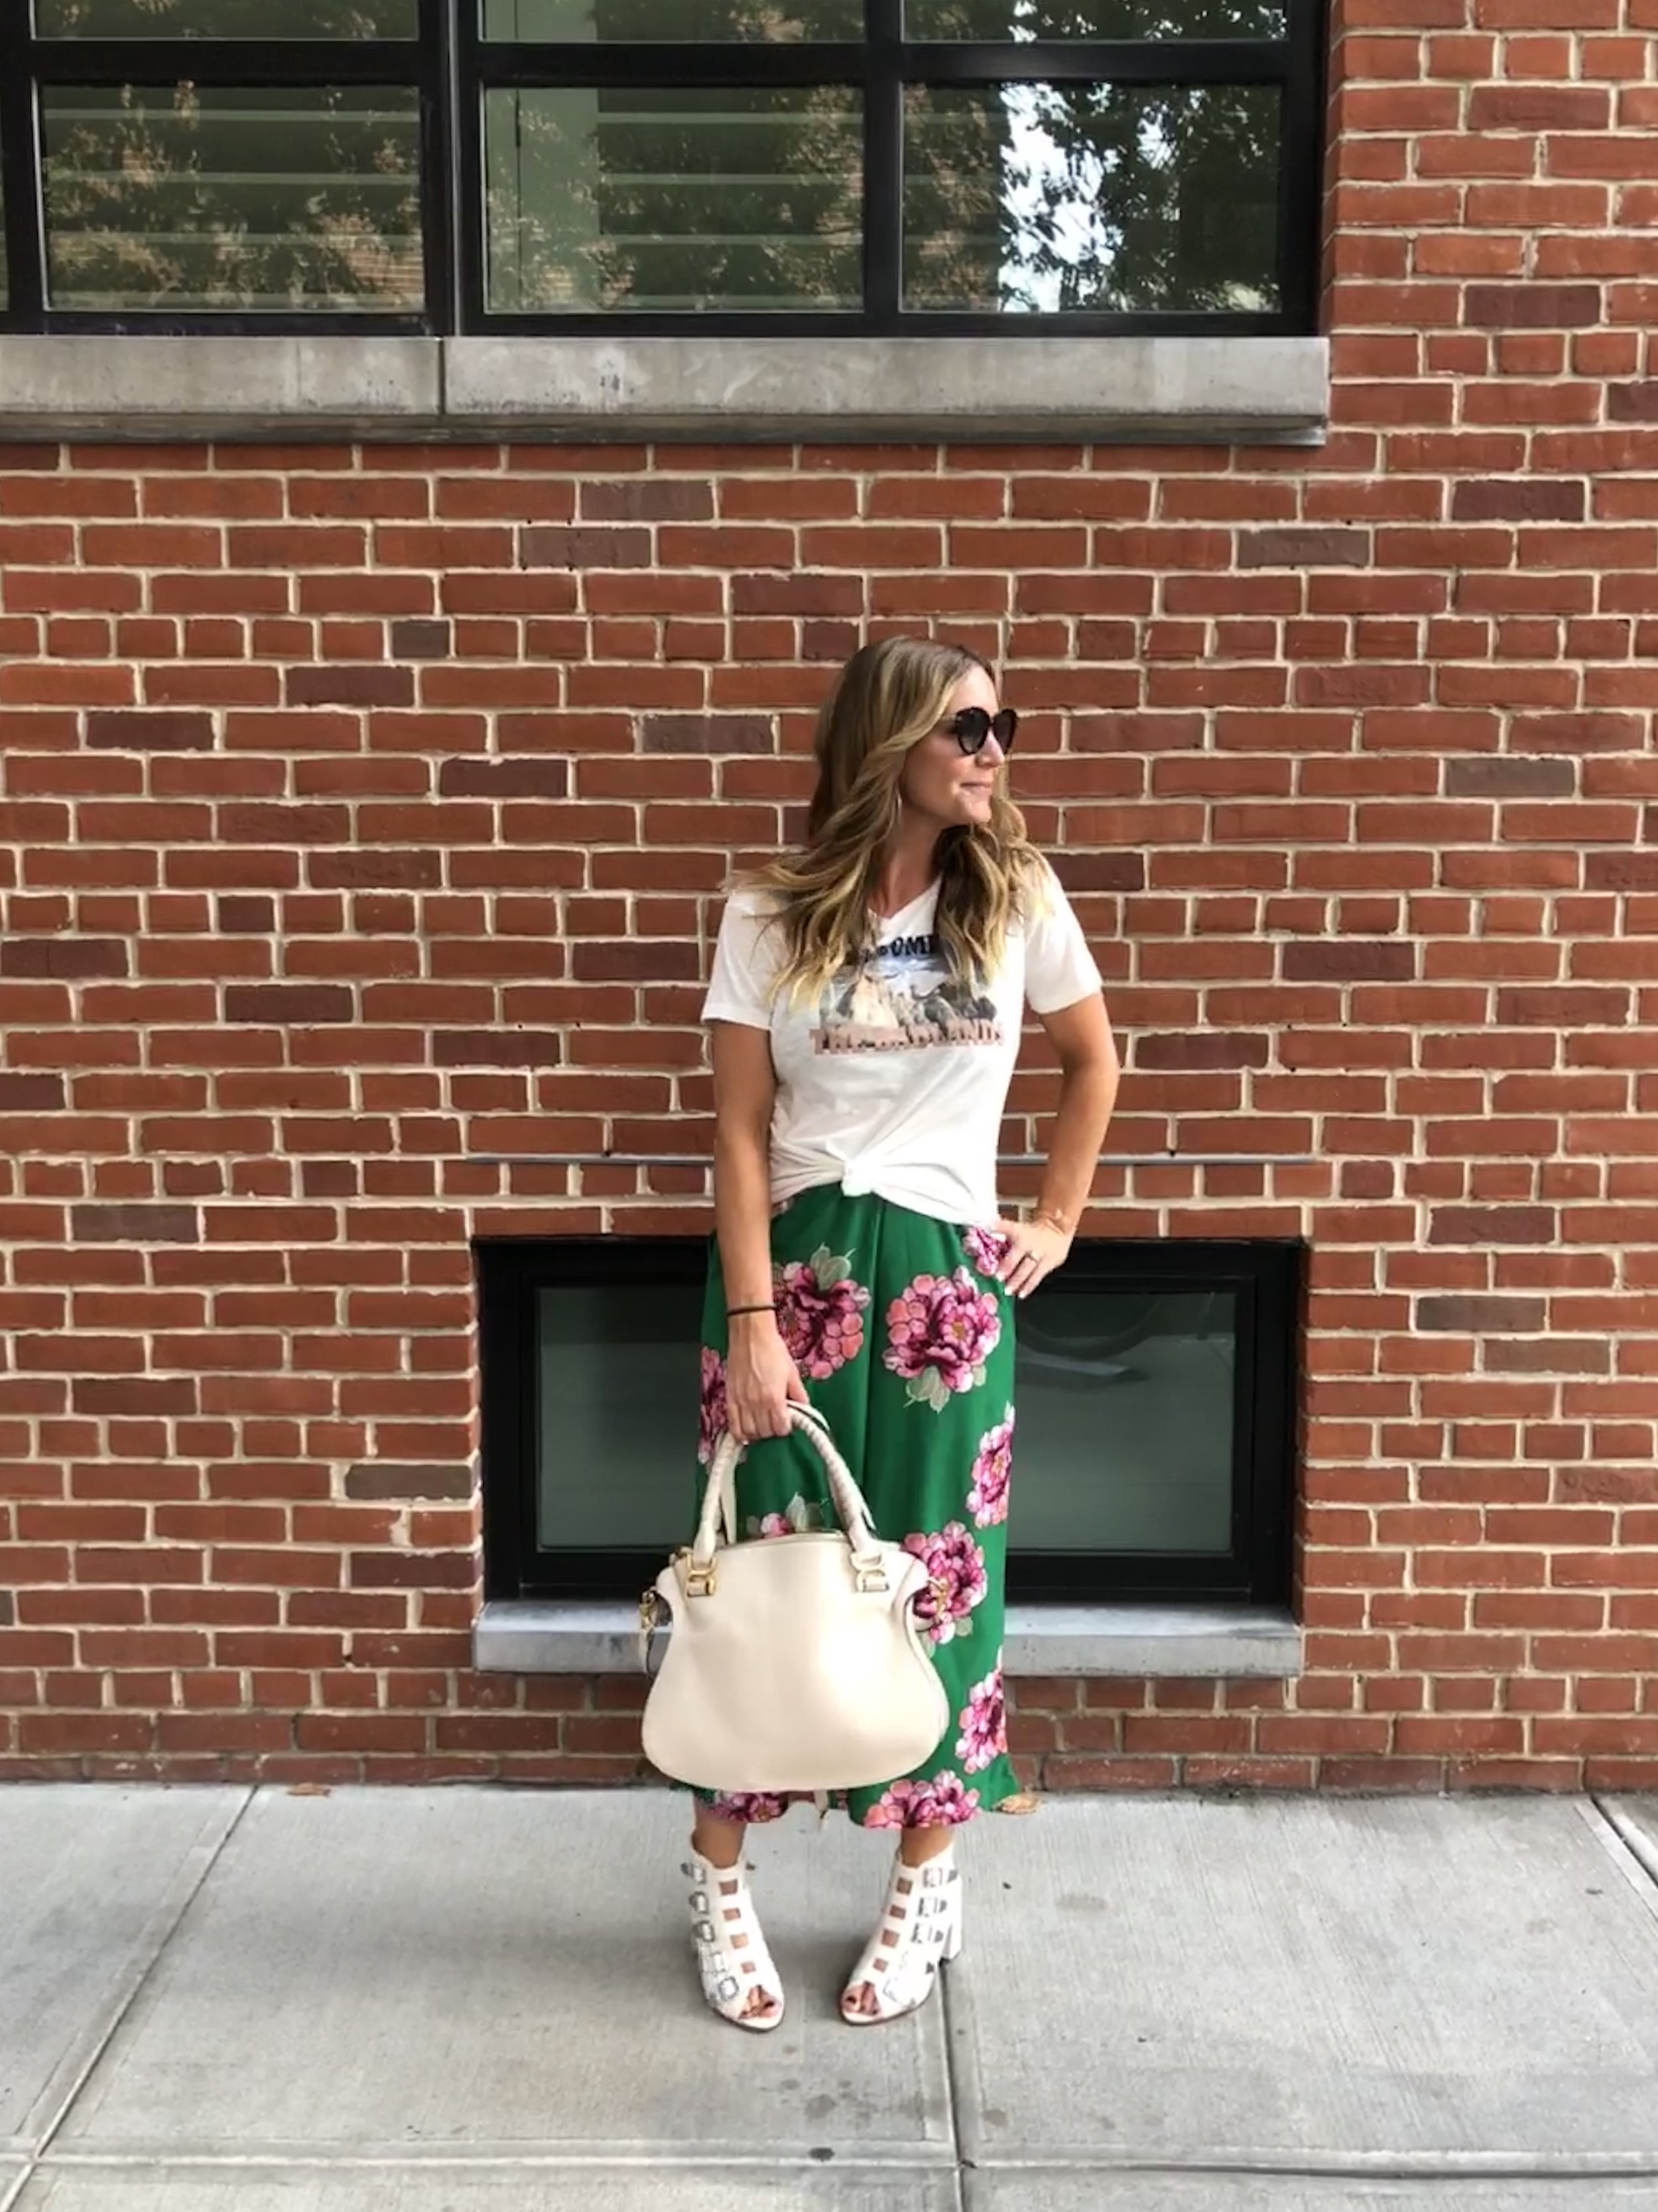 ASOS shoes    (all-time fave list for sure!) |    ASOS floral culottes    (   similar here)    |    madewell tee    |    tom ford sunnies